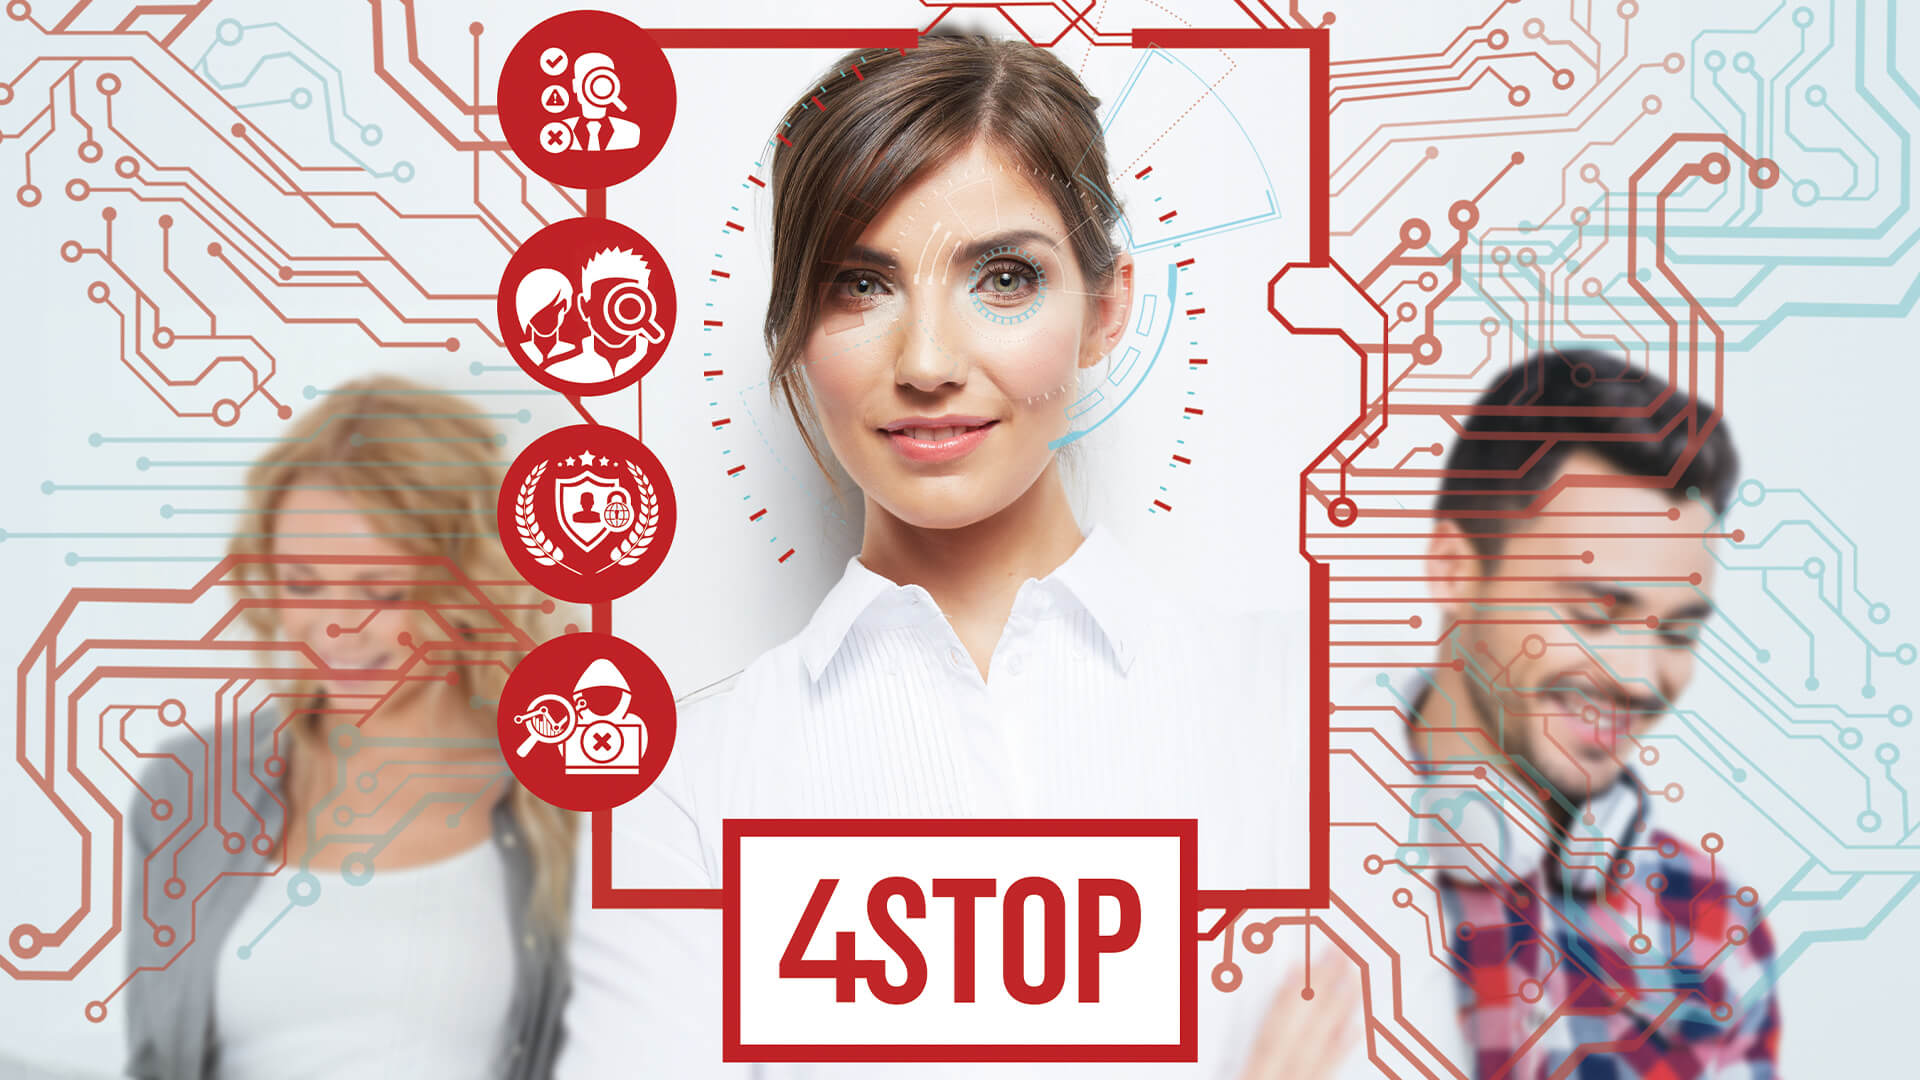 4Stop - Most Innovative Risk Management Platform (Western Europe)